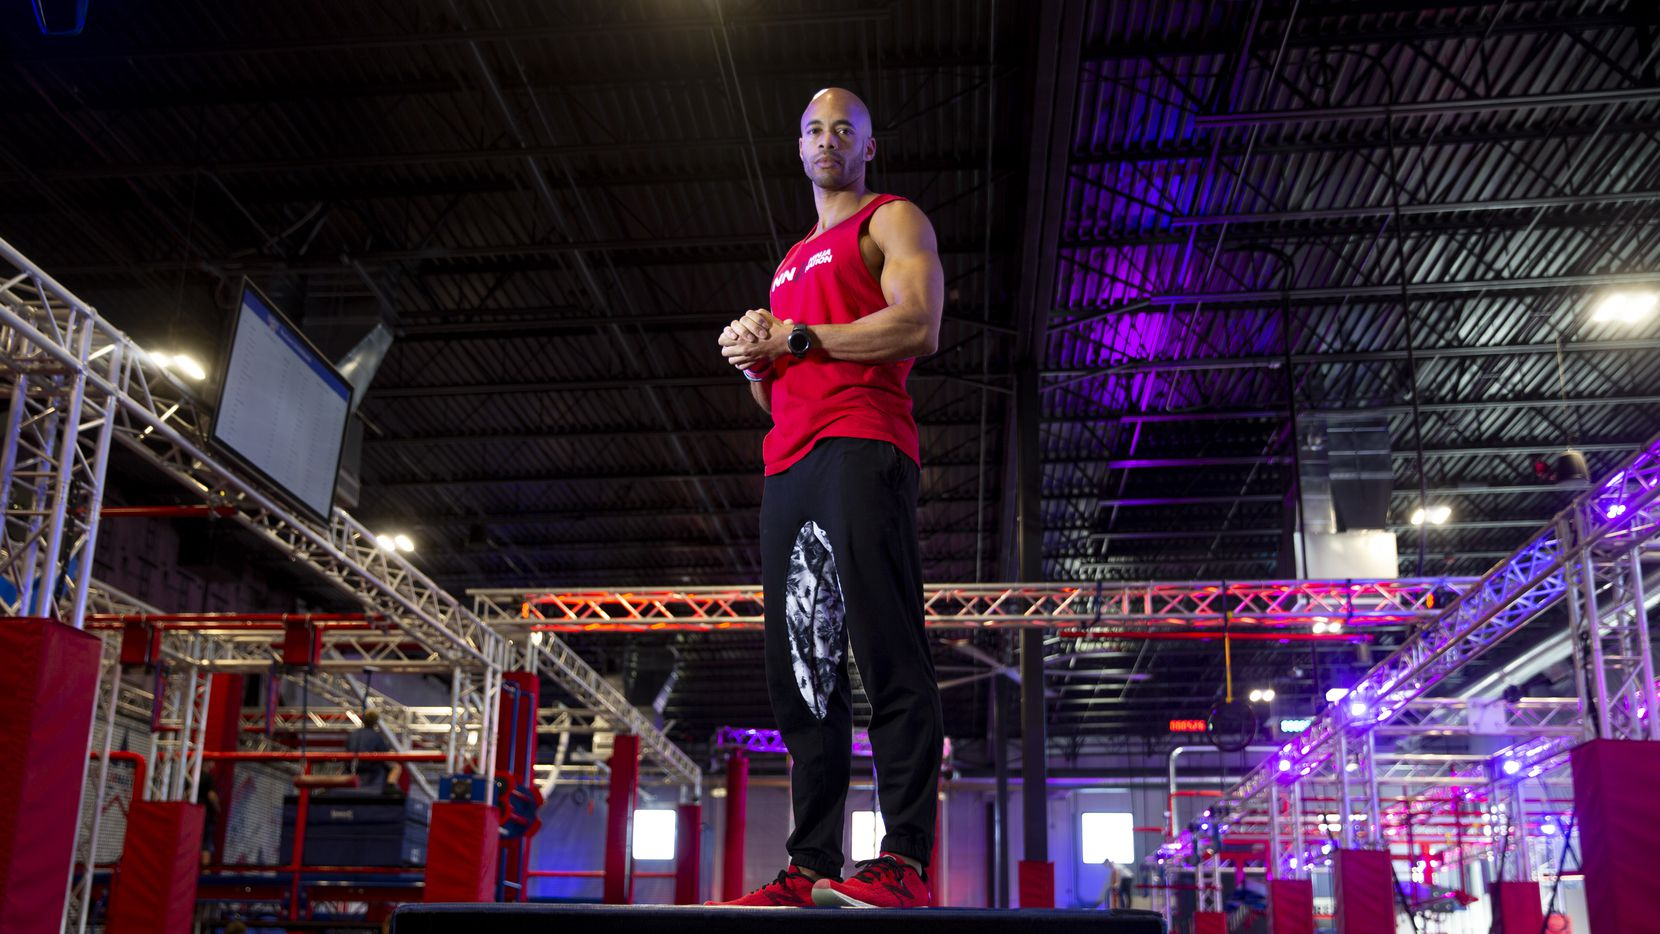 American Ninja Warrior competitor Karsten Williams uses Ninja Nation in Frisco as the base for his training and his job.